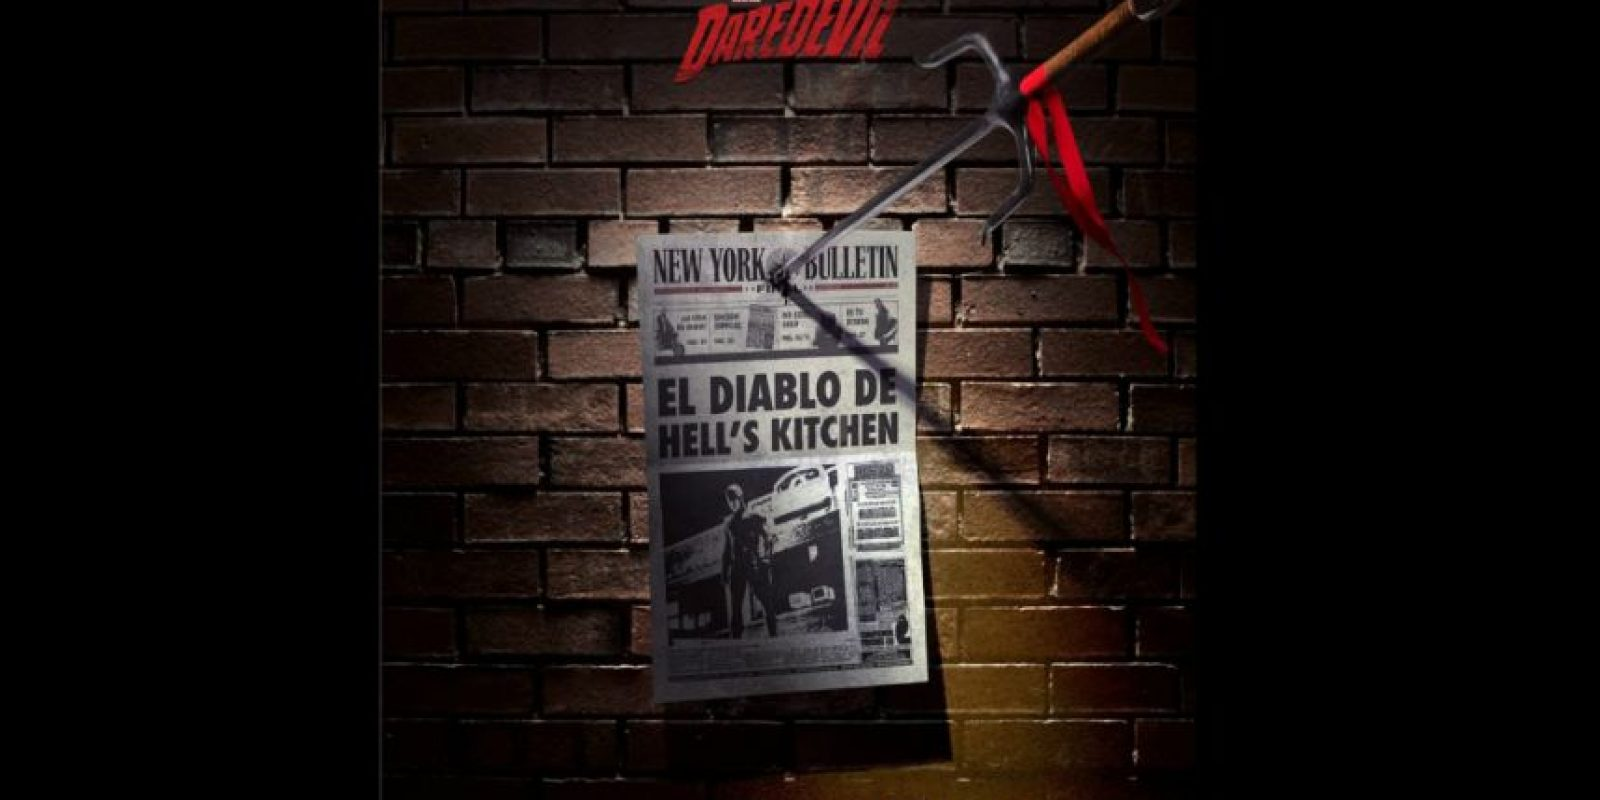 """Daredevil"" Foto: Marvel.com"